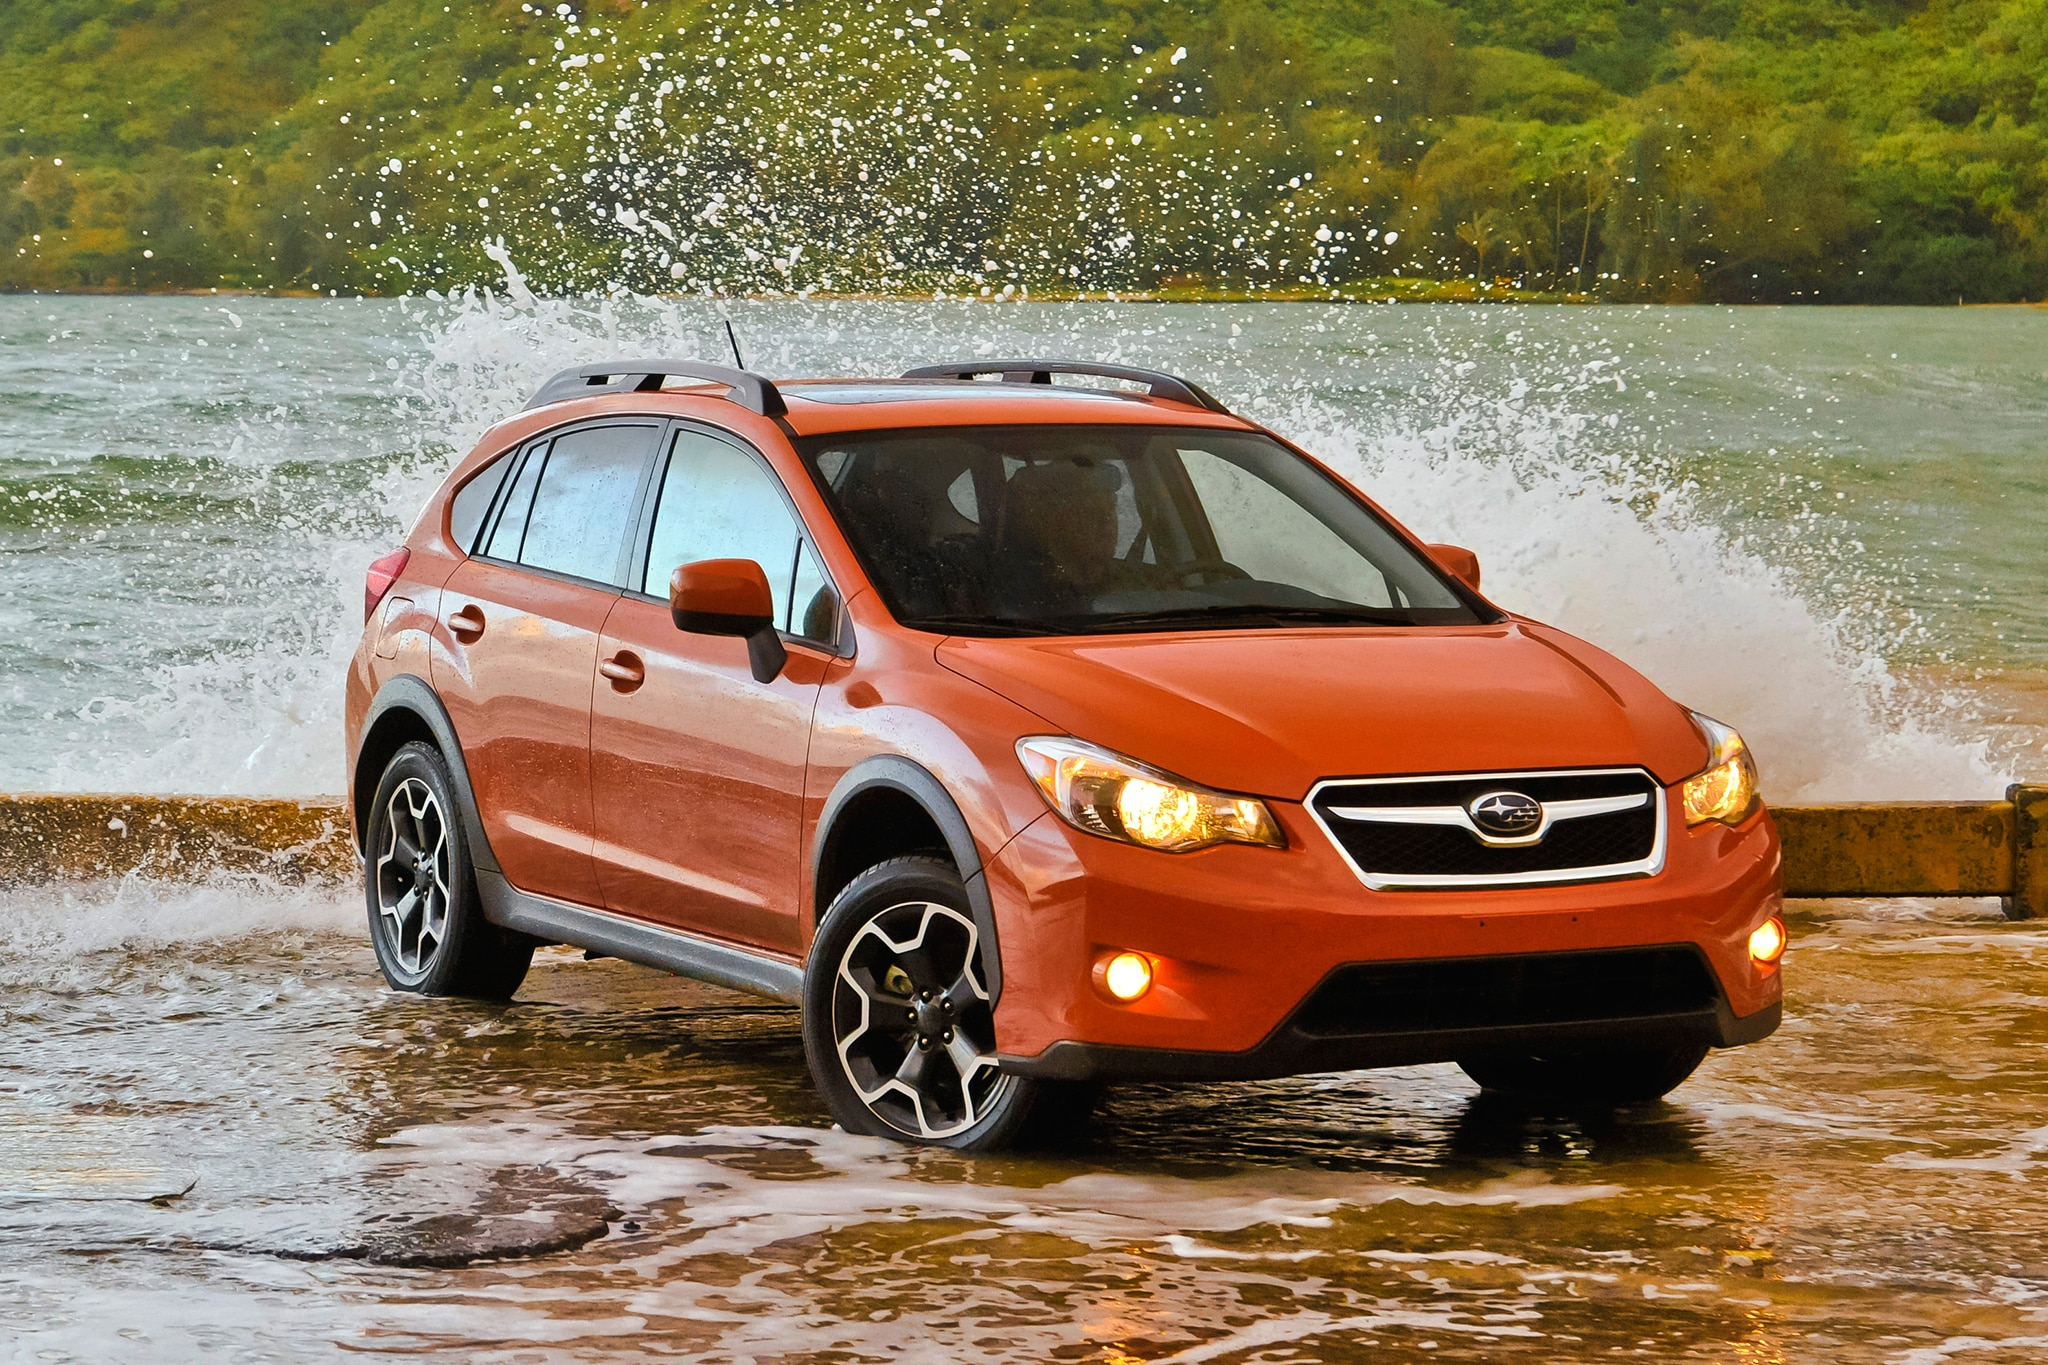 2019 Subaru Crosstrek Hybrid >> 2015 Subaru XV Crosstrek Gains EyeSight, New Infotainment System